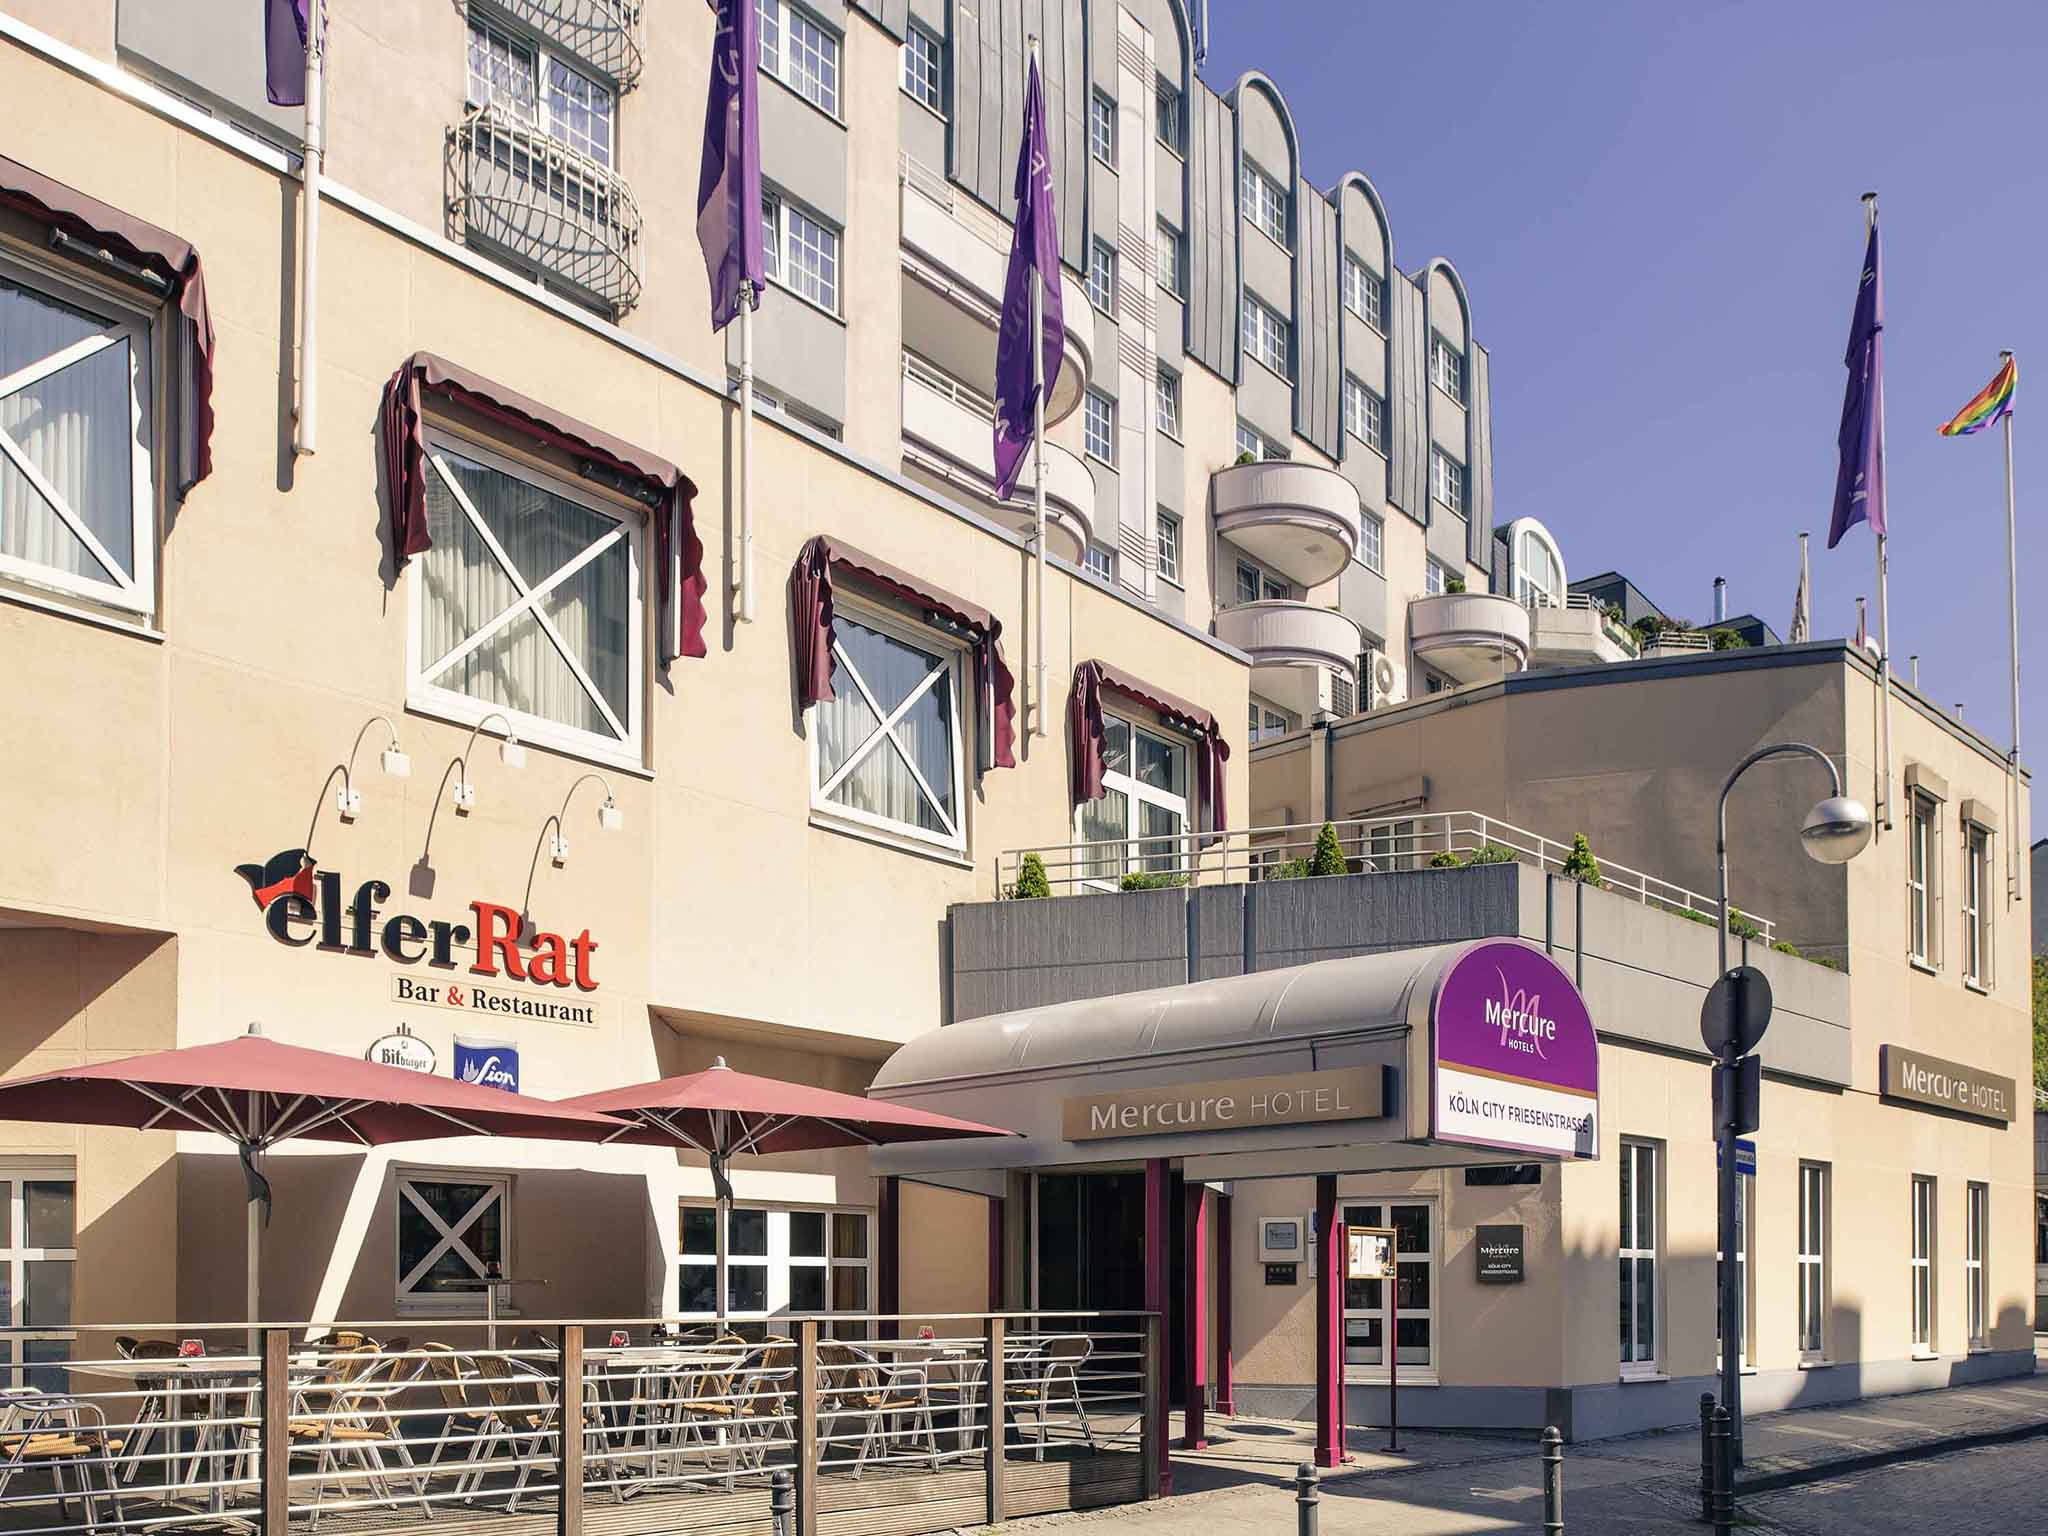 Tivoli Hotel Check Ud Mercure Hotel Cologne City Friesenstrasse Book Online Now